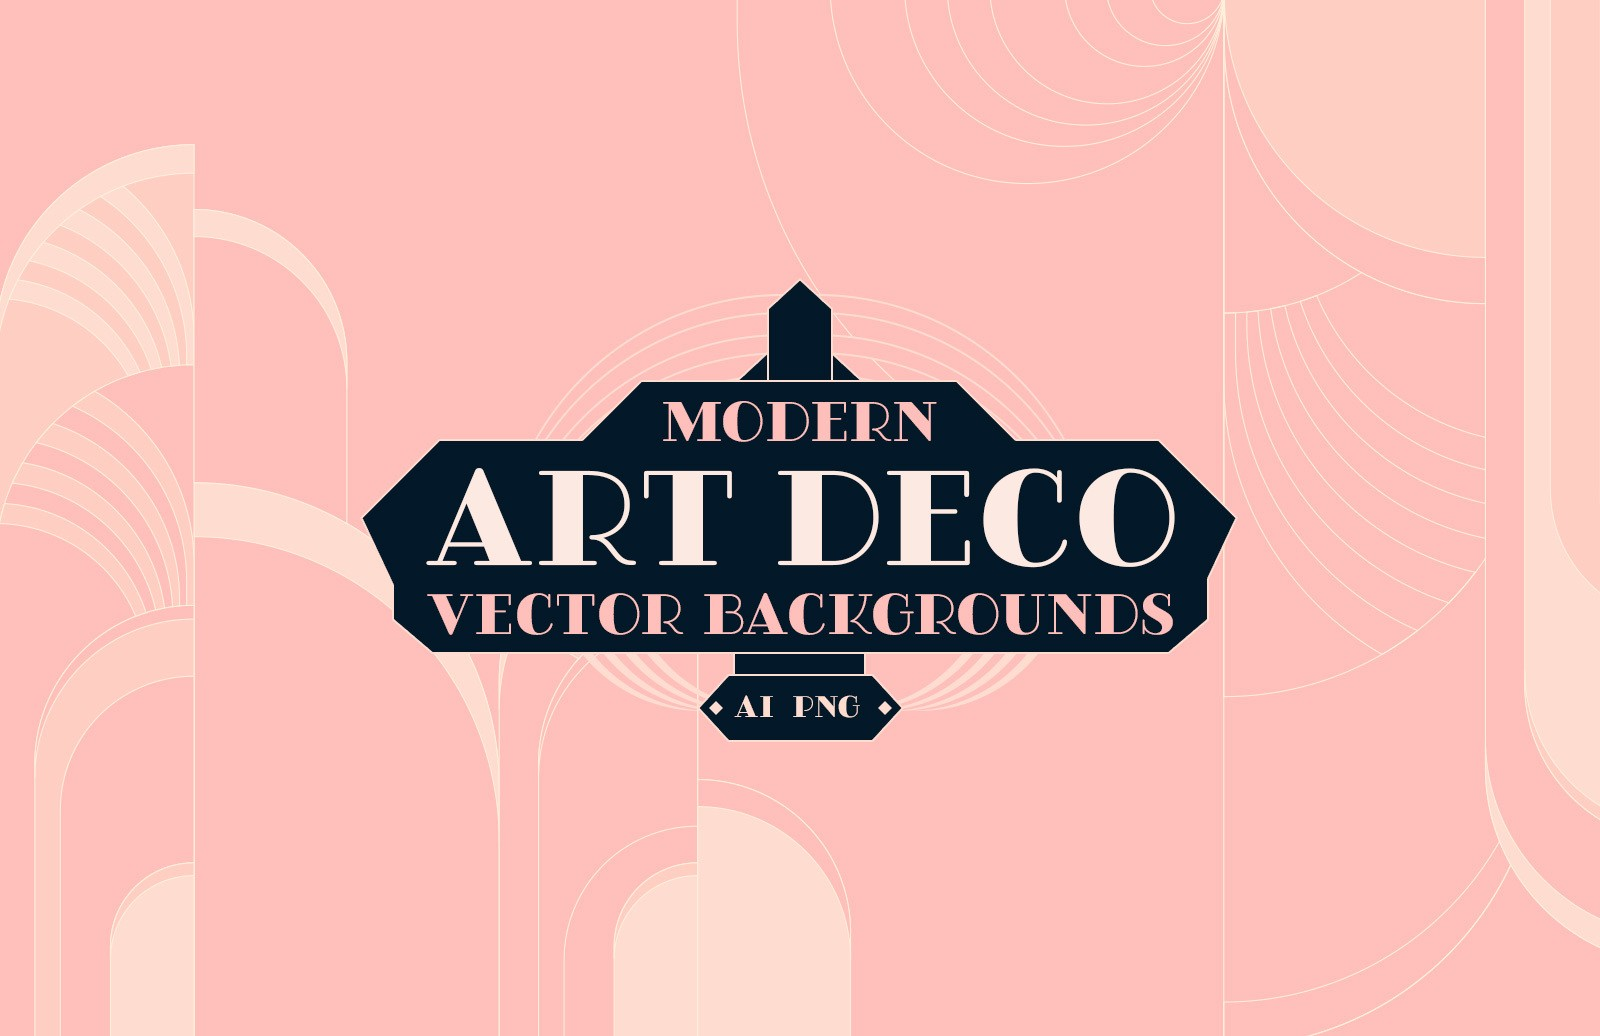 Modern Art Deco Vector Backgrounds Preview 1